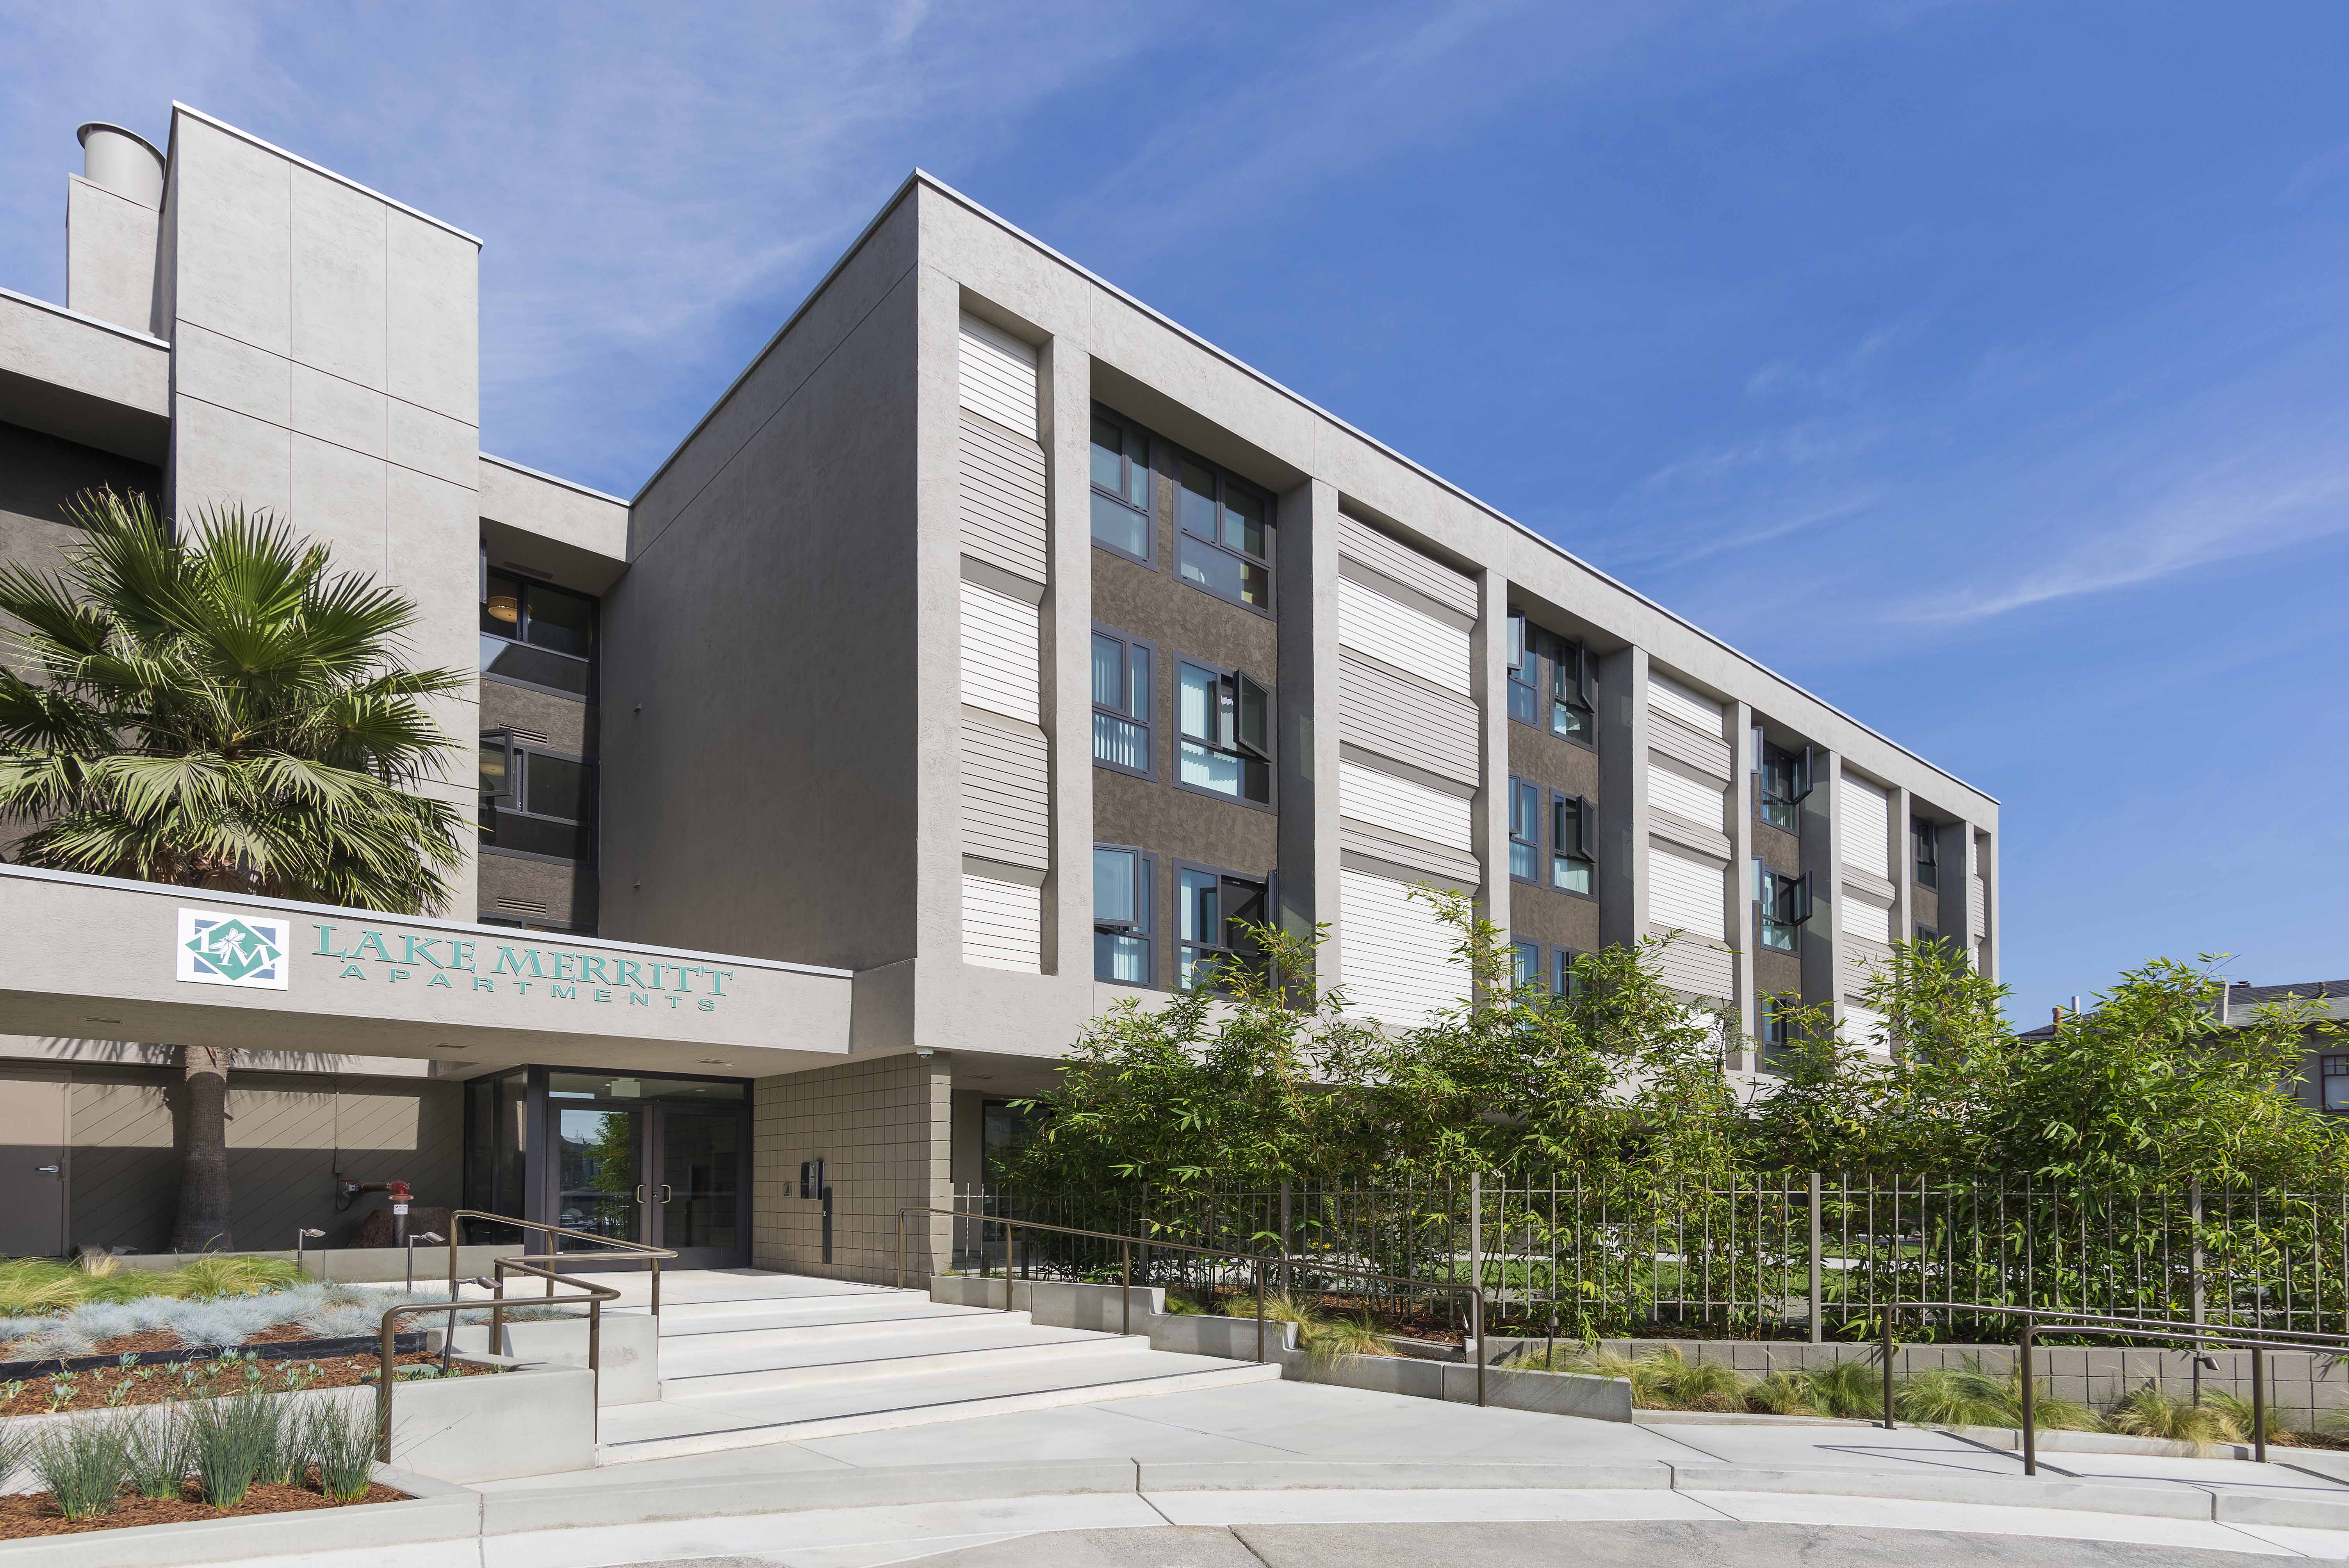 Skender Completes Independent Living Facility Rehabilitation in Oakland